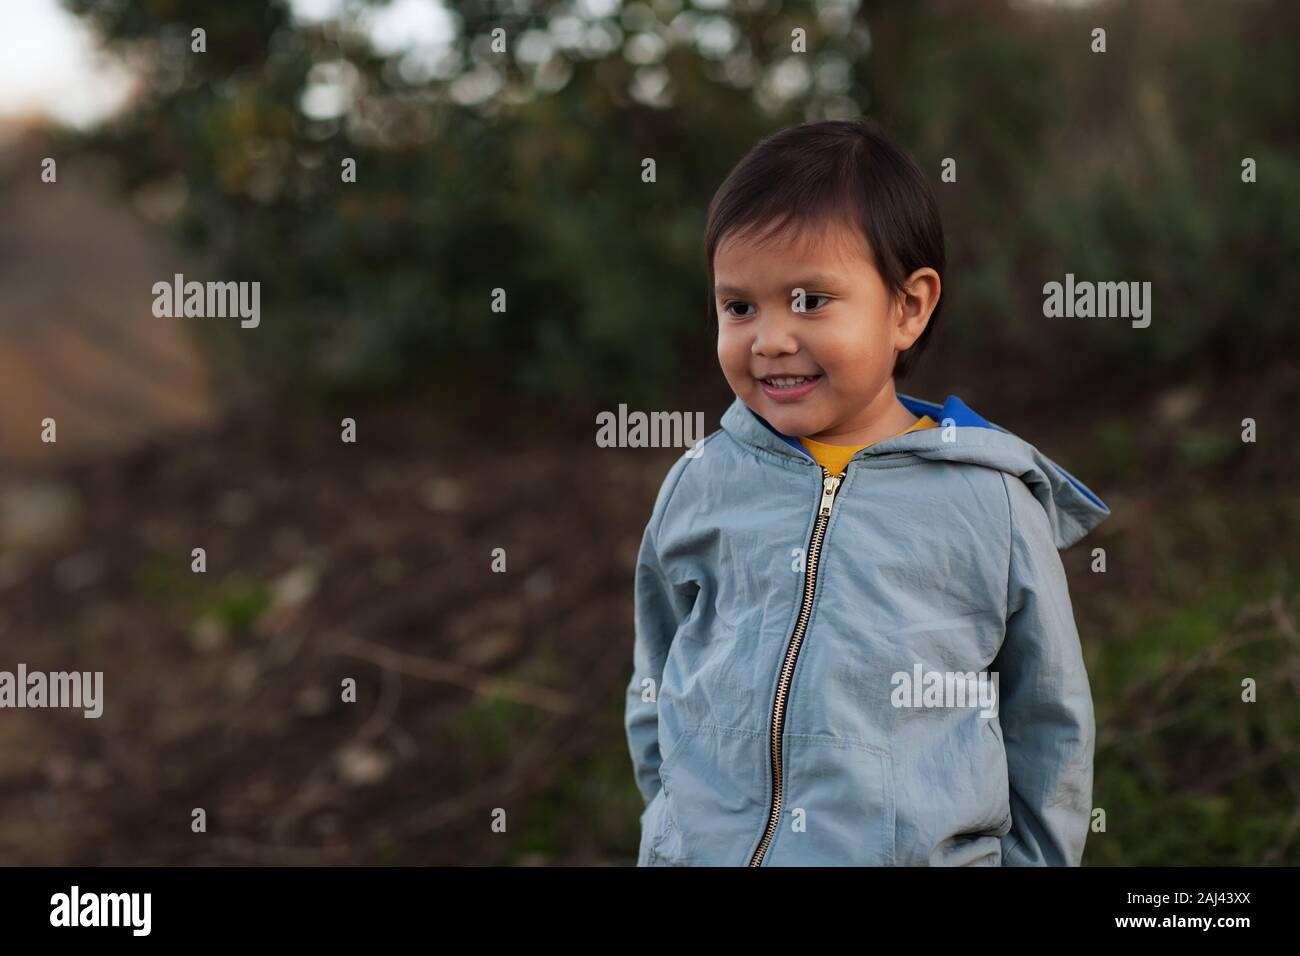 A hispanic young boy wearing a jacket and enjoying a day in the wilderness. Stock Photo